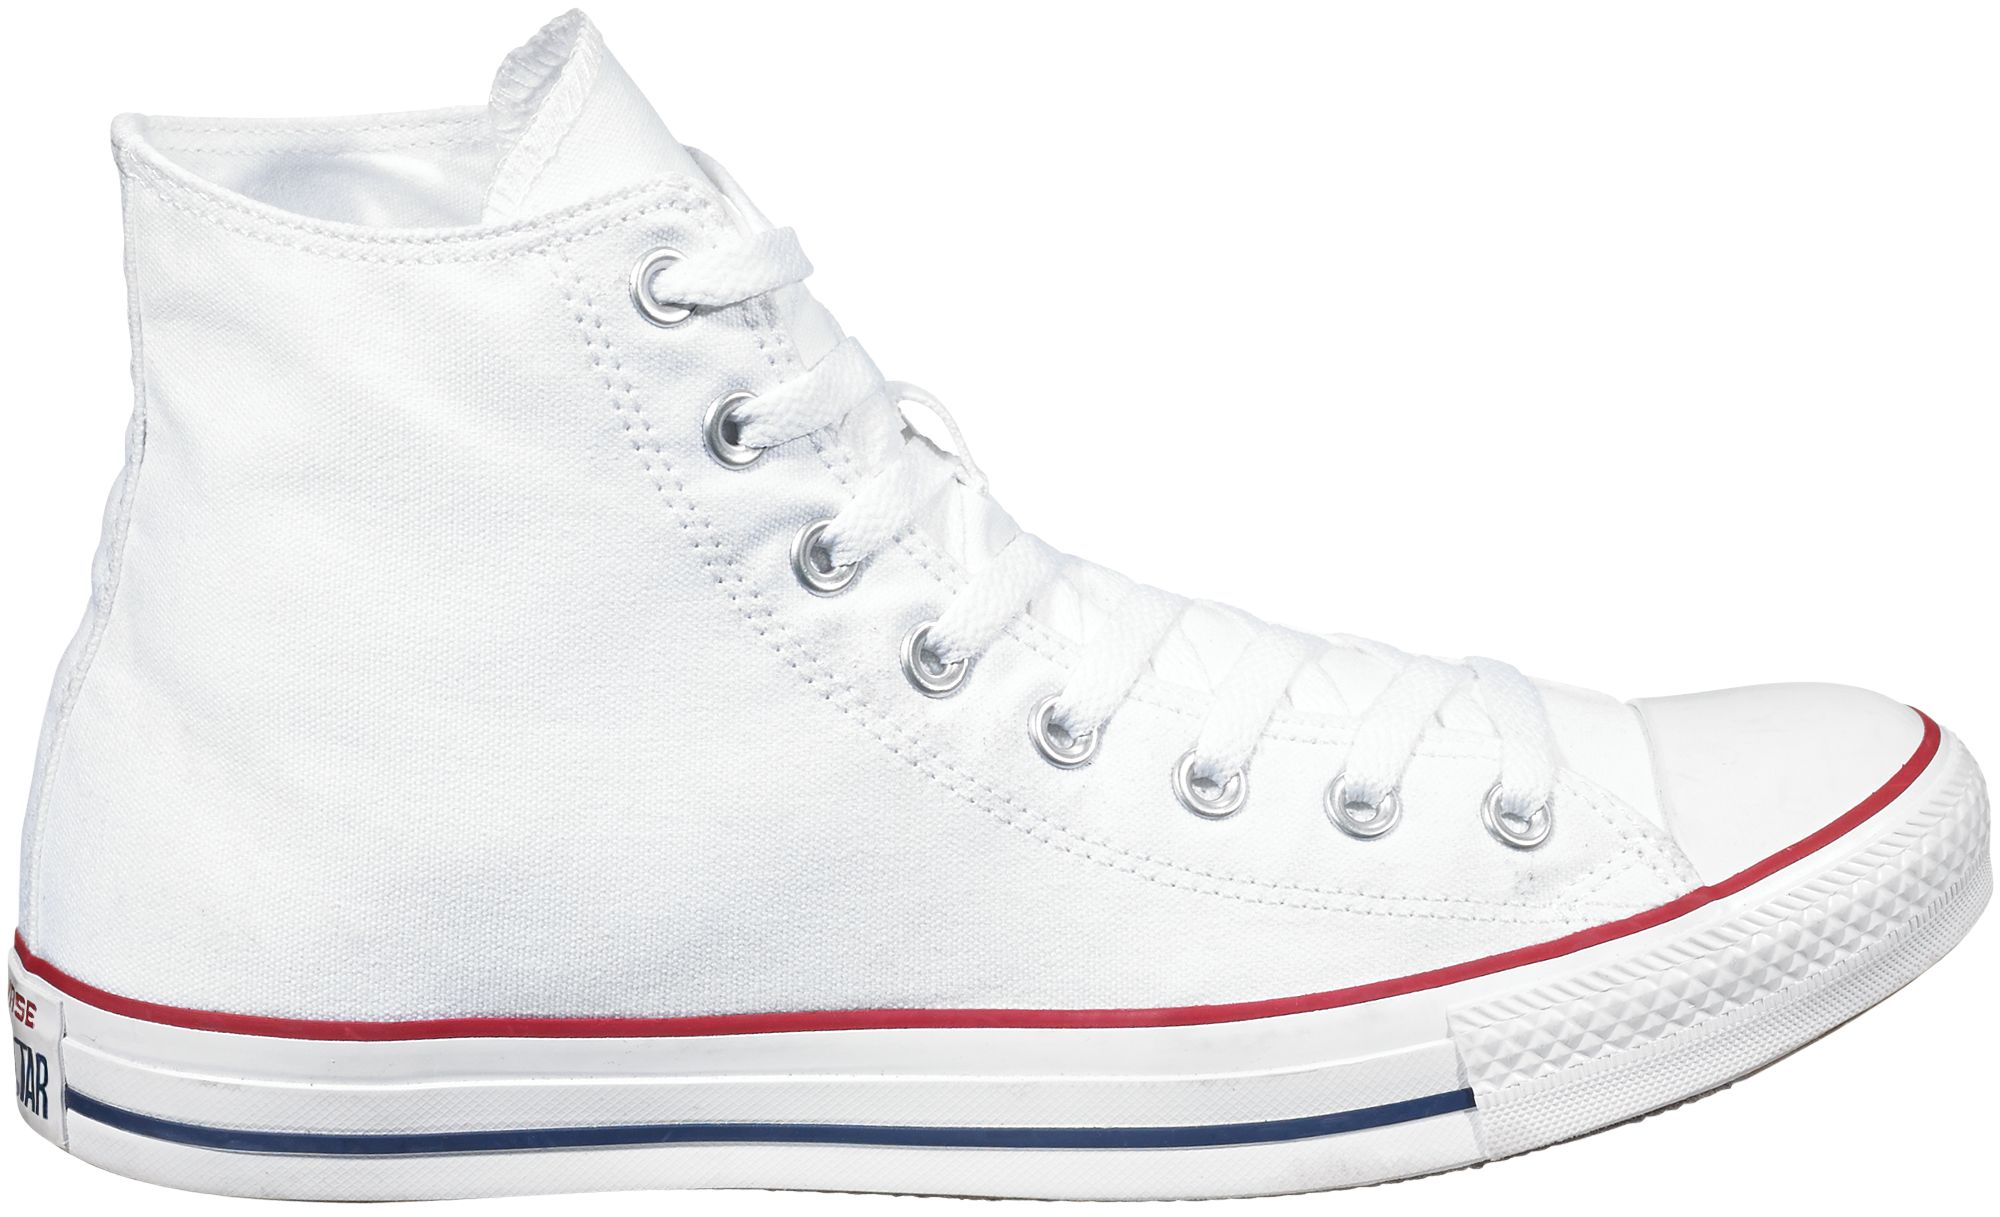 converse shoes high tops. product image · converse chuck taylor all star classic hi-top casual shoes high tops